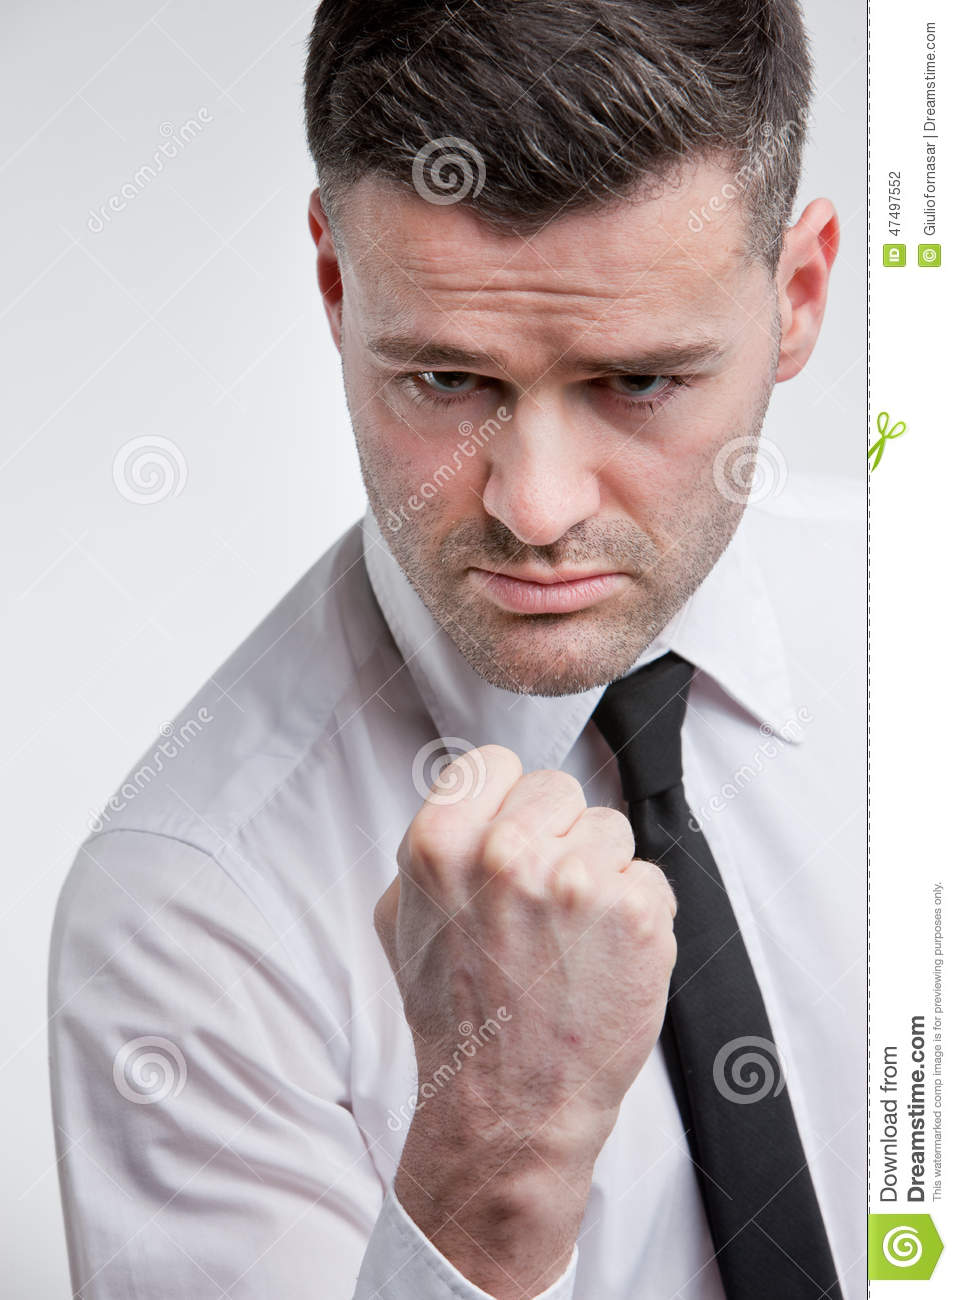 Punch threat by angry dangerous man